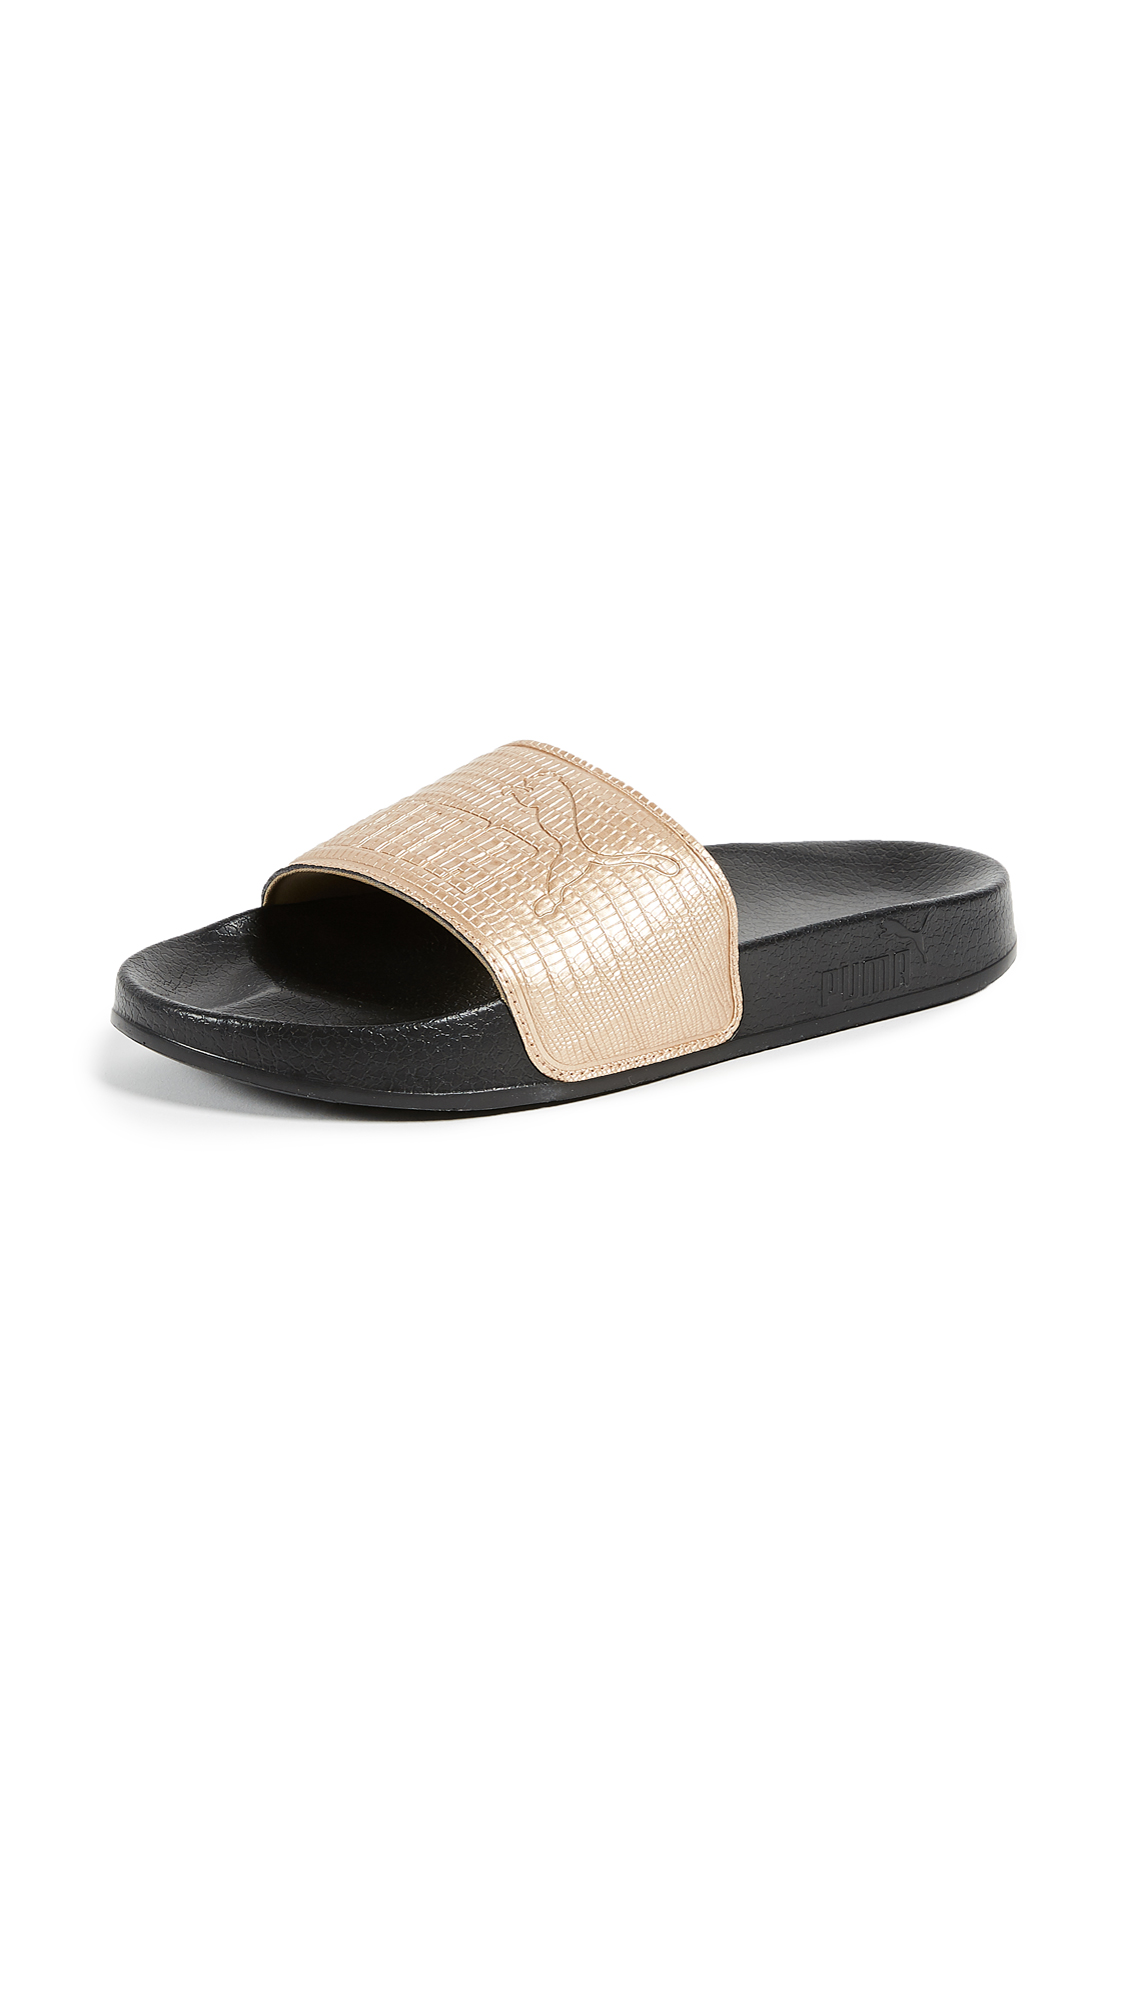 PUMA Leadcat Slides - Gold/Puma Black